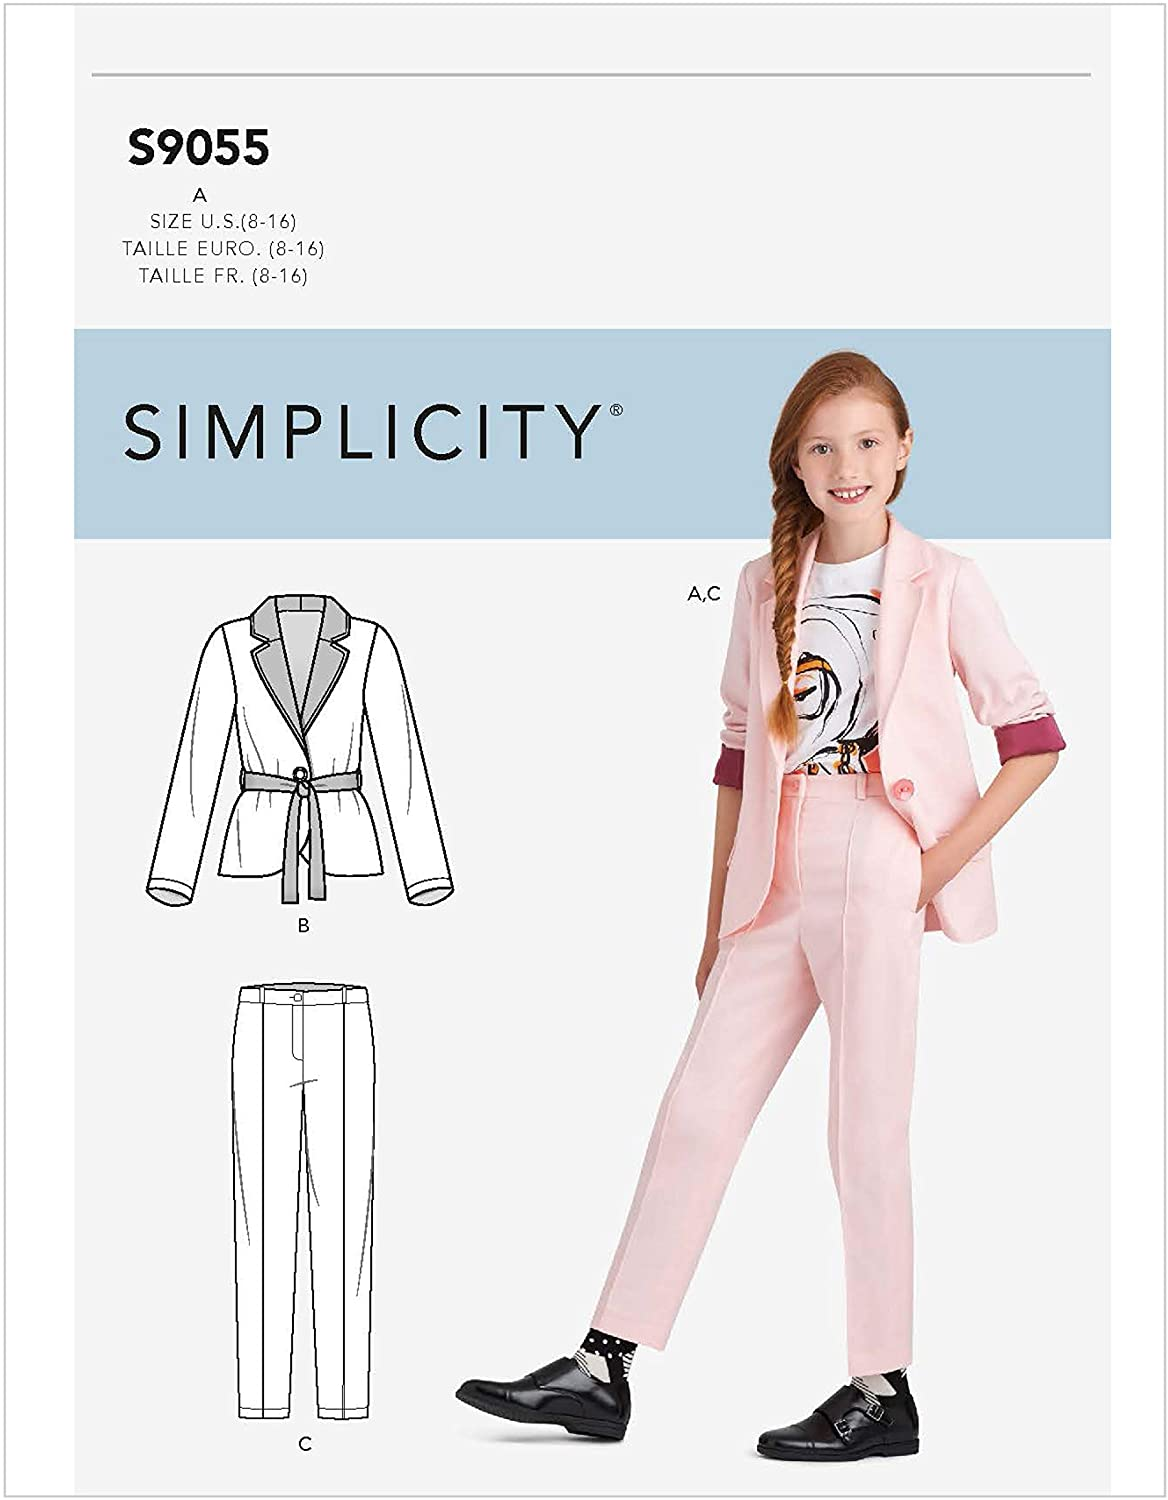 Simplicity Sewing Pattern S9055 - Girls' Jacket & Pants, Size: A (8-10-12-14-16)